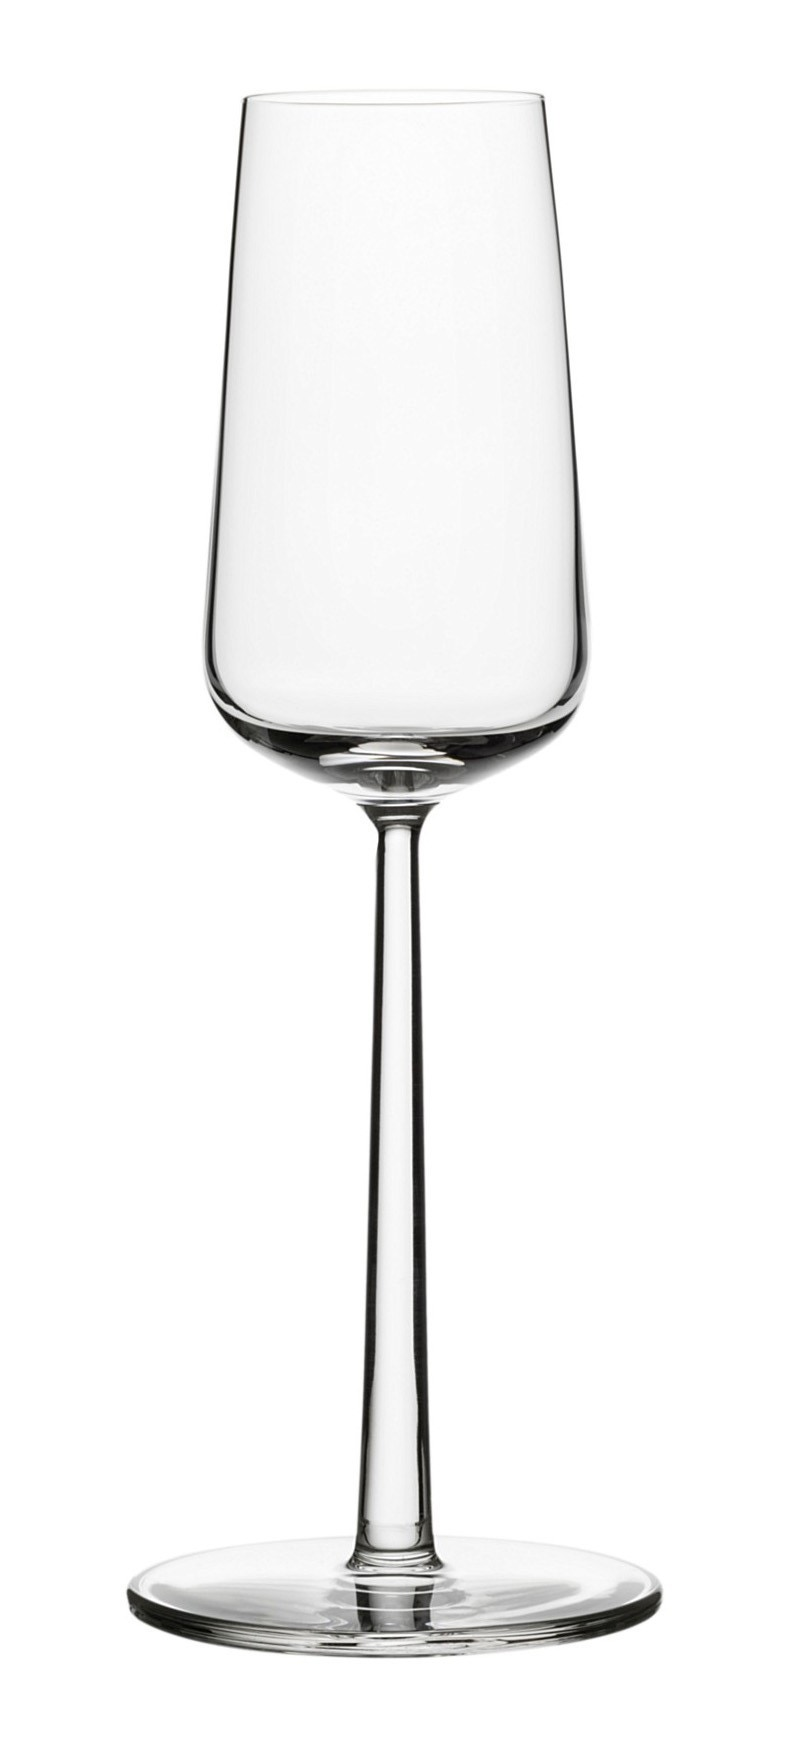 Iittala Essence Champagne Flutes (Set of 2)